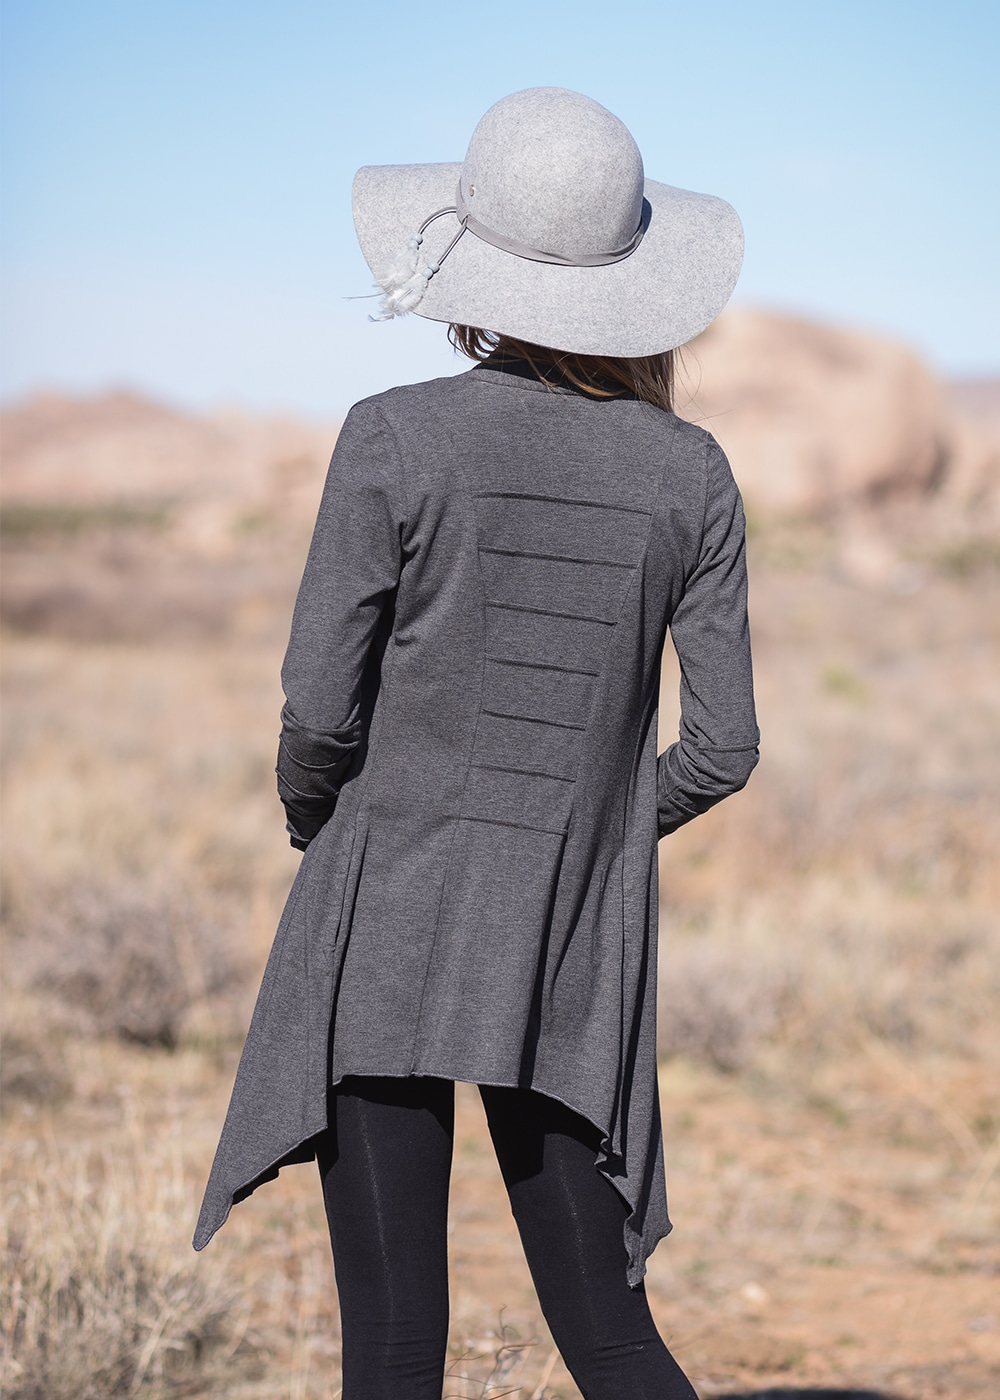 Bamboo and Organic Cotton Twilight Cardigan in Grey by Nomads Hemp Wear Back